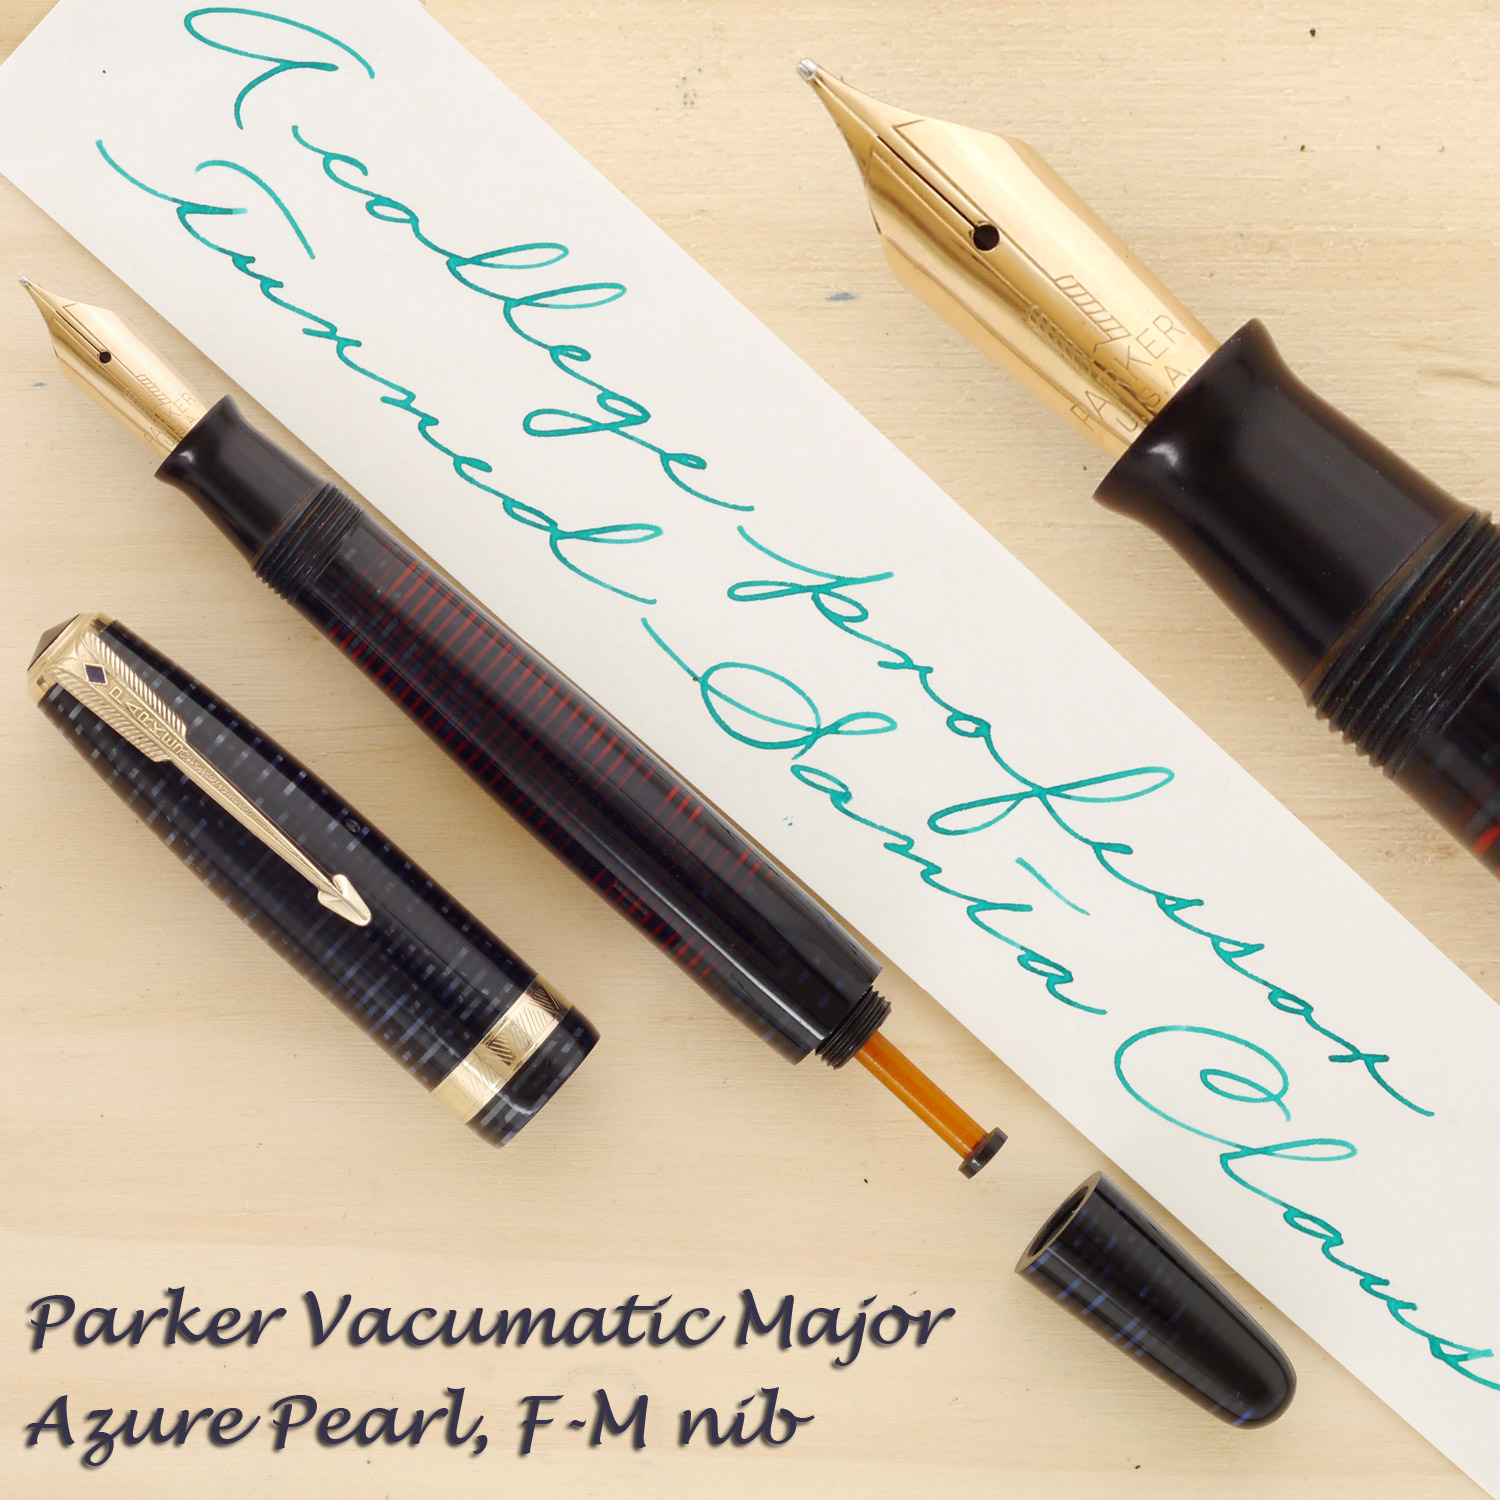 Parker Vacumatic Major in Azure Blue Pearl with an F-M nib